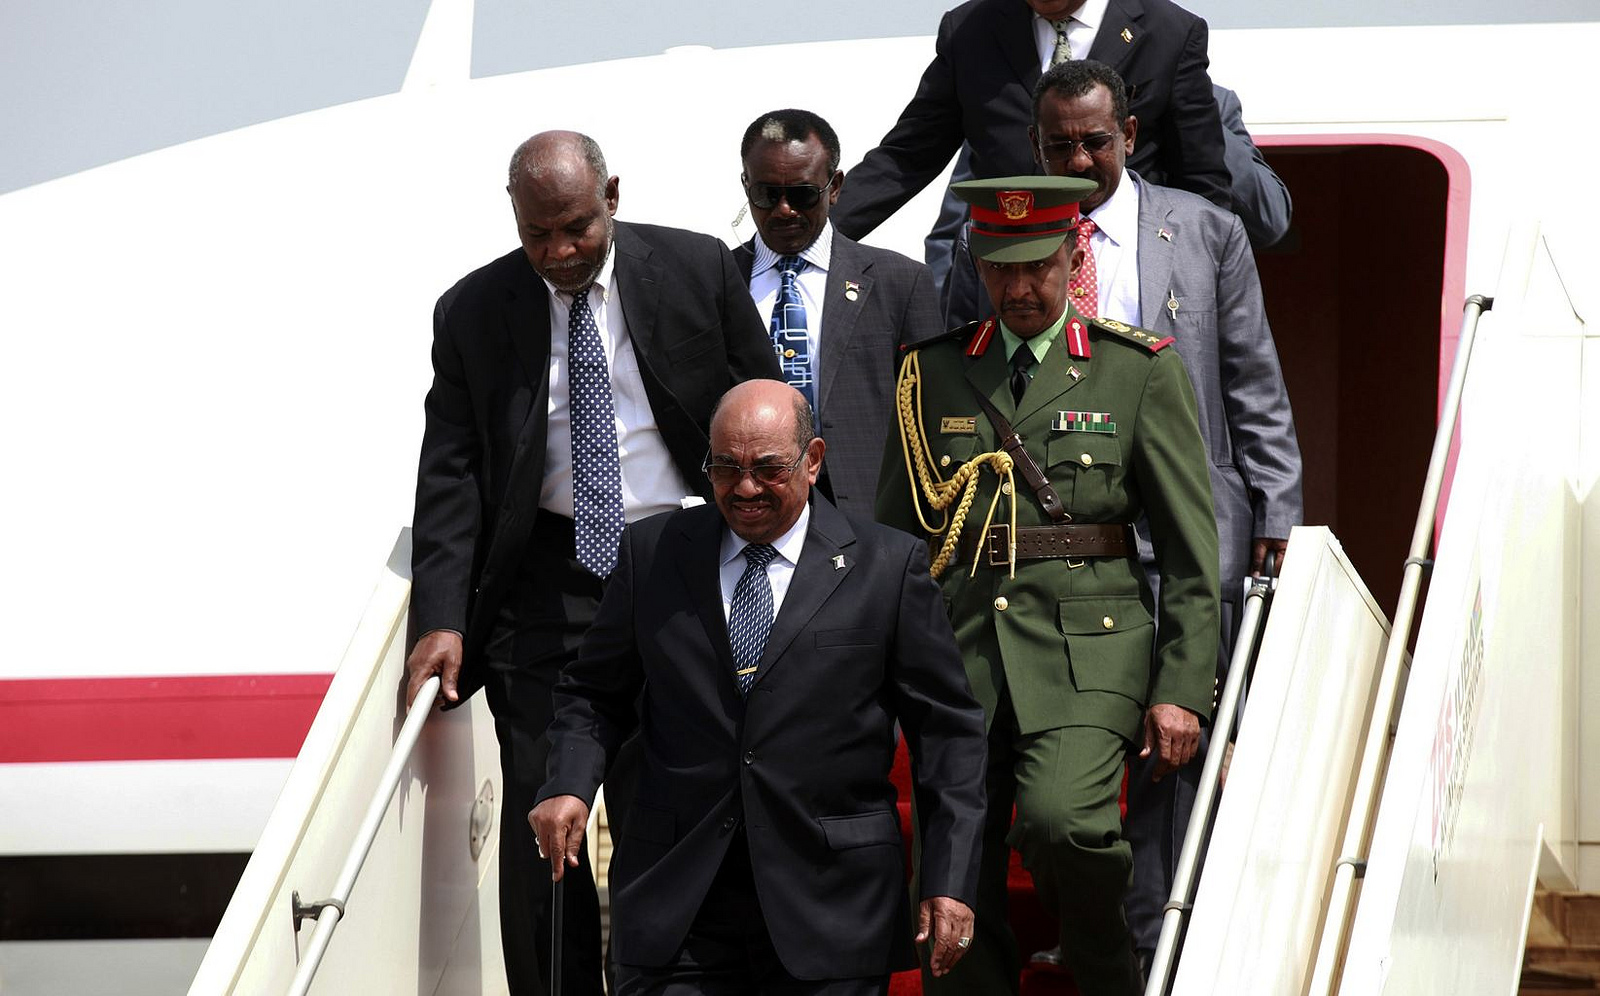 President Omar Hassan al-Bashir leaving plane in April, 2013. Photo: Abayomi Azikiwe (published under fair use policy for intellectual non-commercial purposes)